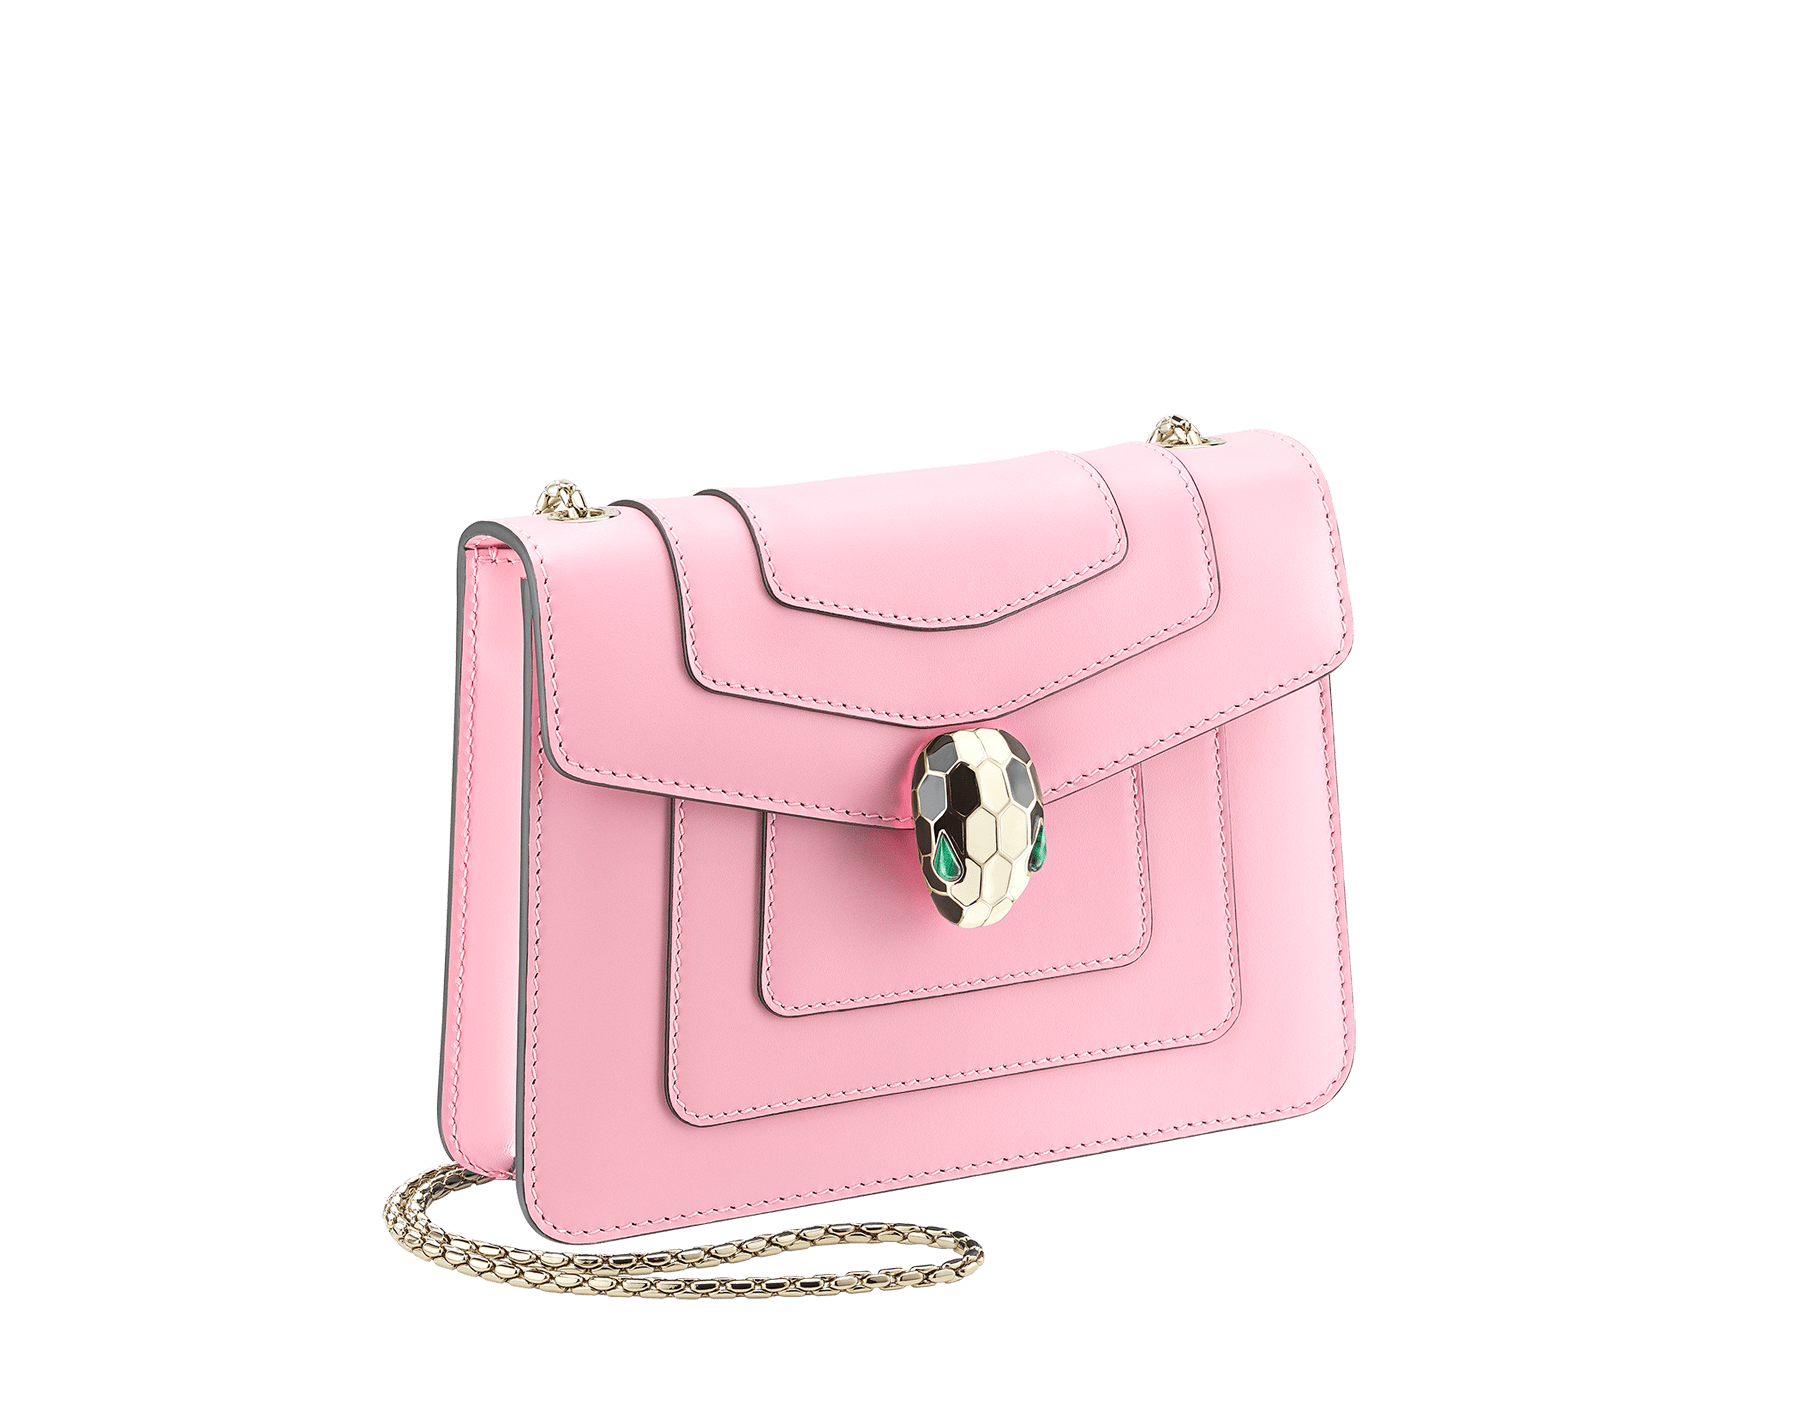 """Serpenti Forever "" crossbody bag in cobalt tourmaline calf leather. Iconic snakehead closure in light gold plated brass enriched with black and white enamel and green malachite eyes 422-CLb image 2"